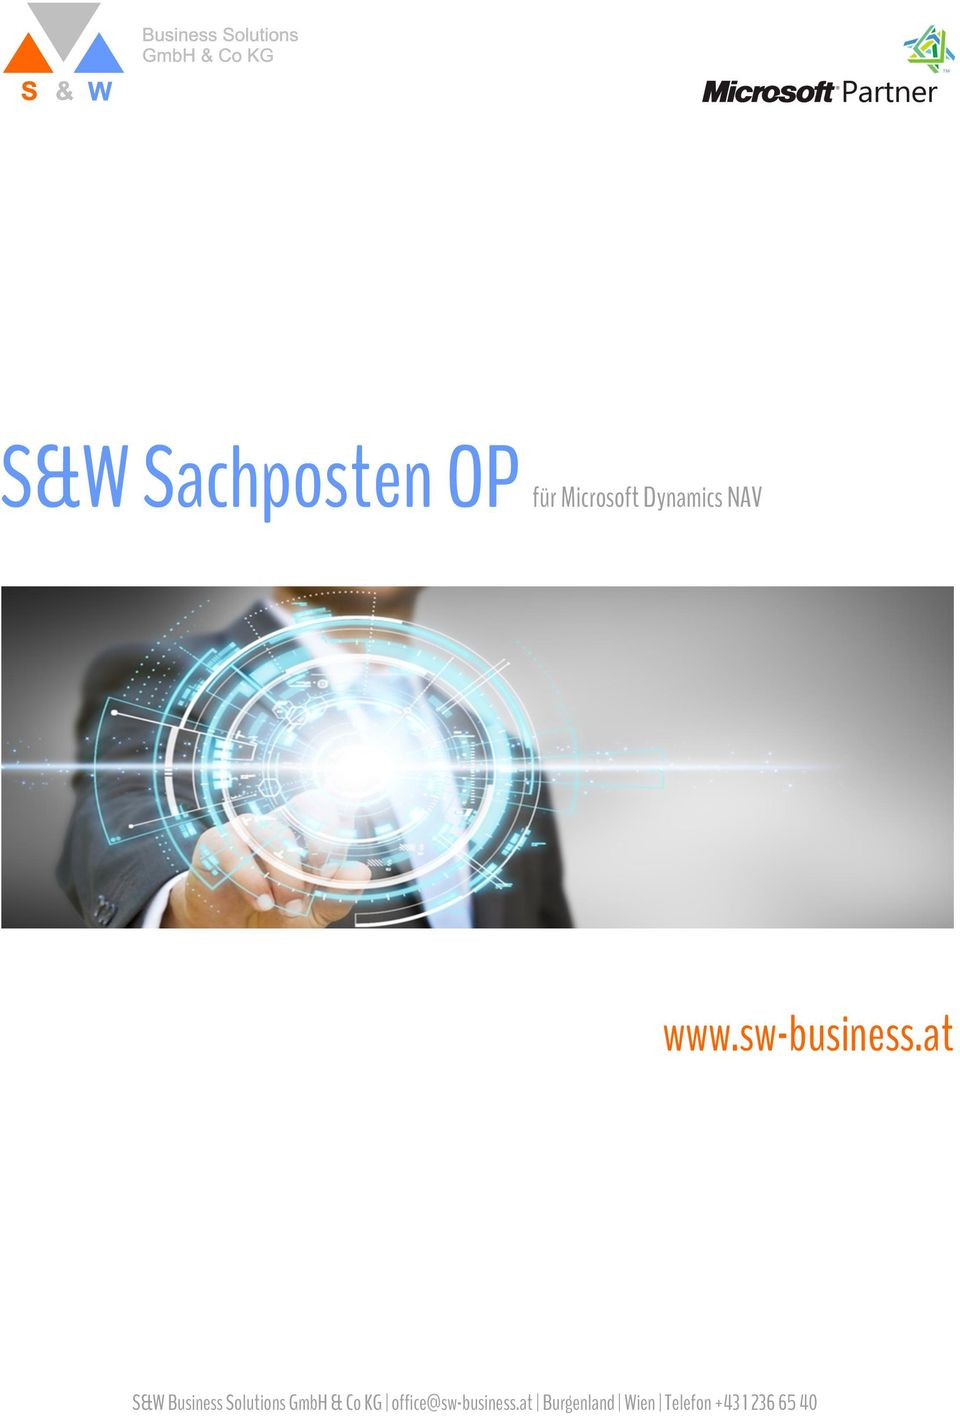 at S&W Business Solutions GmbH & Co KG